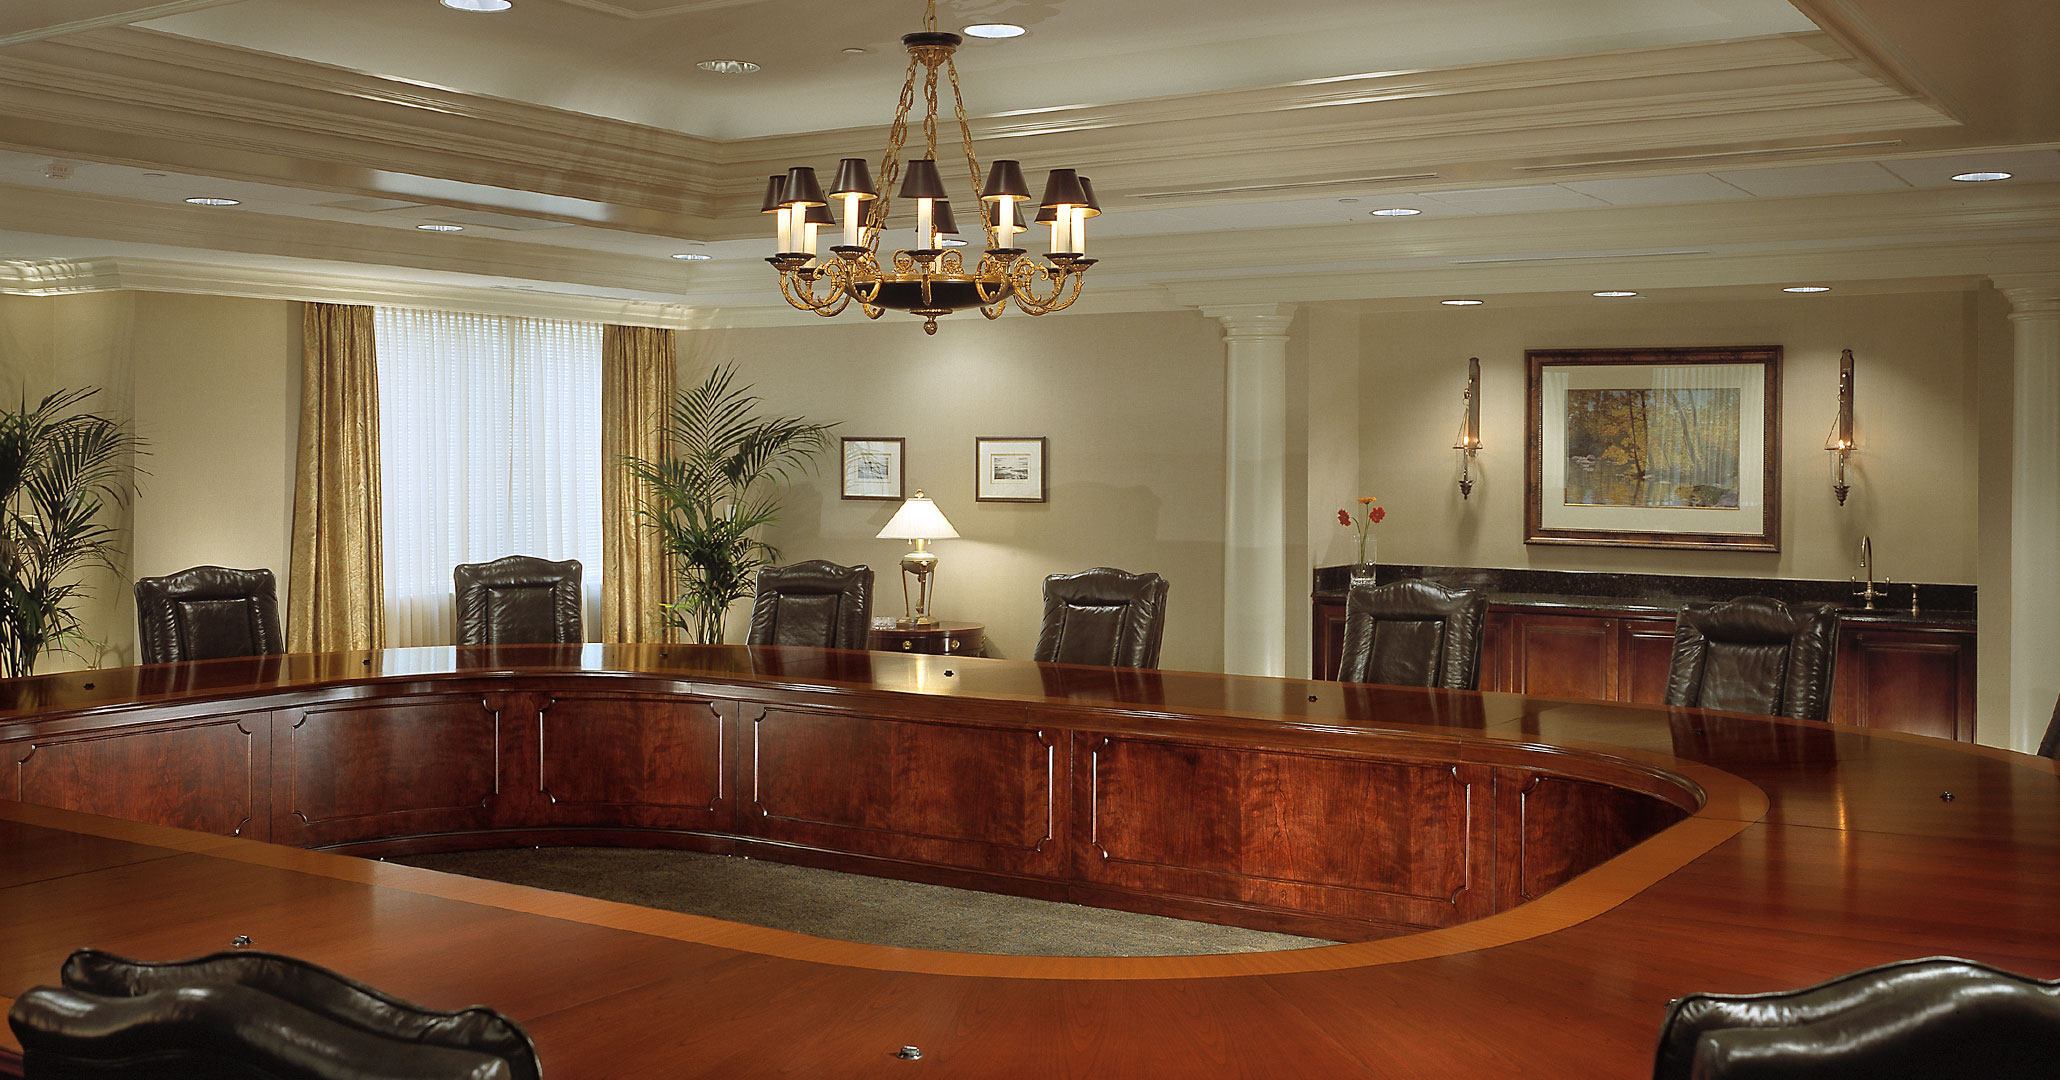 Boudreaux architects provided interior design services for South State Bank for their traditional office spaces.